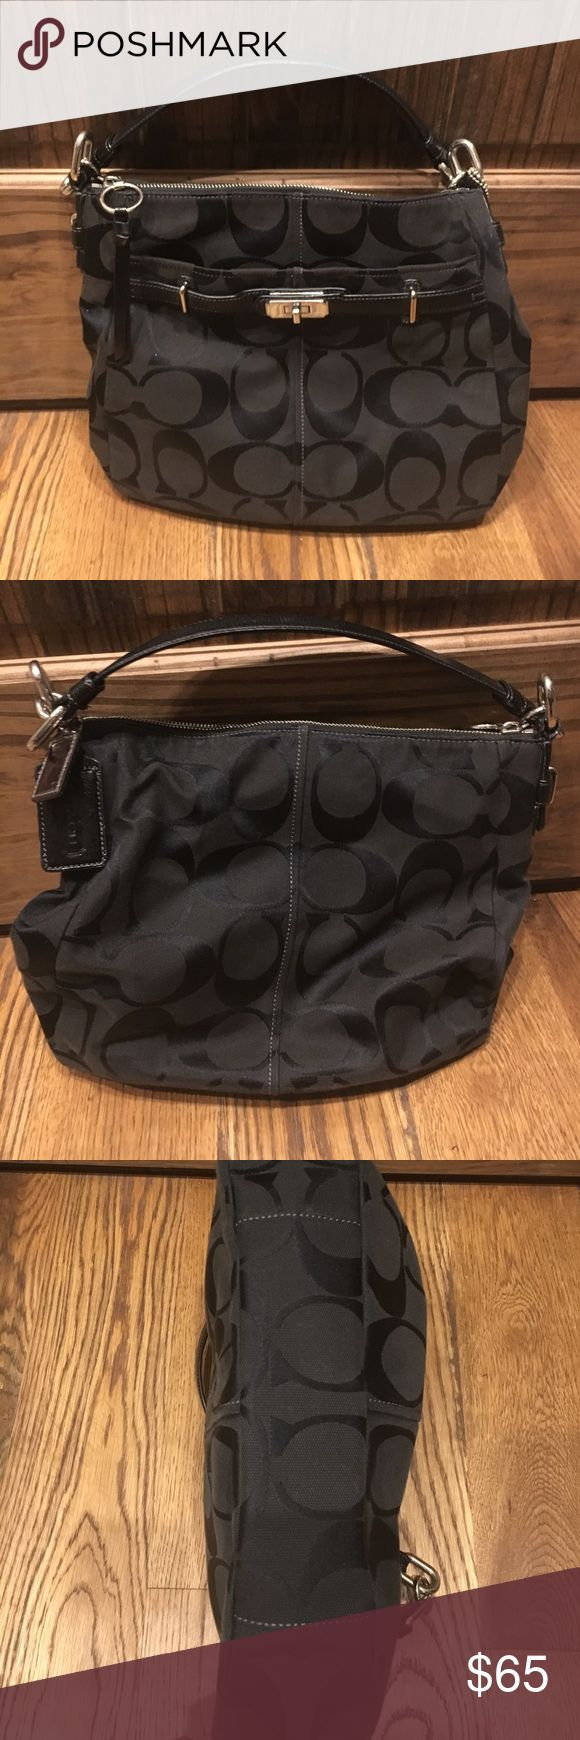 Authentic Coach Purse Authentic black Coach purse with silver buckle detail. Coach Bags Hobos